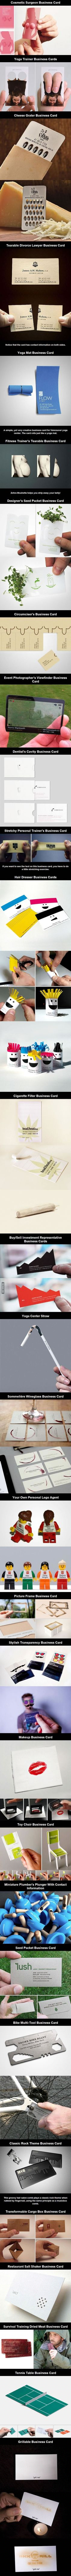 Unconventional Business Cards, #Unique #BusinessCards, #Custom #Business #Card #Printing